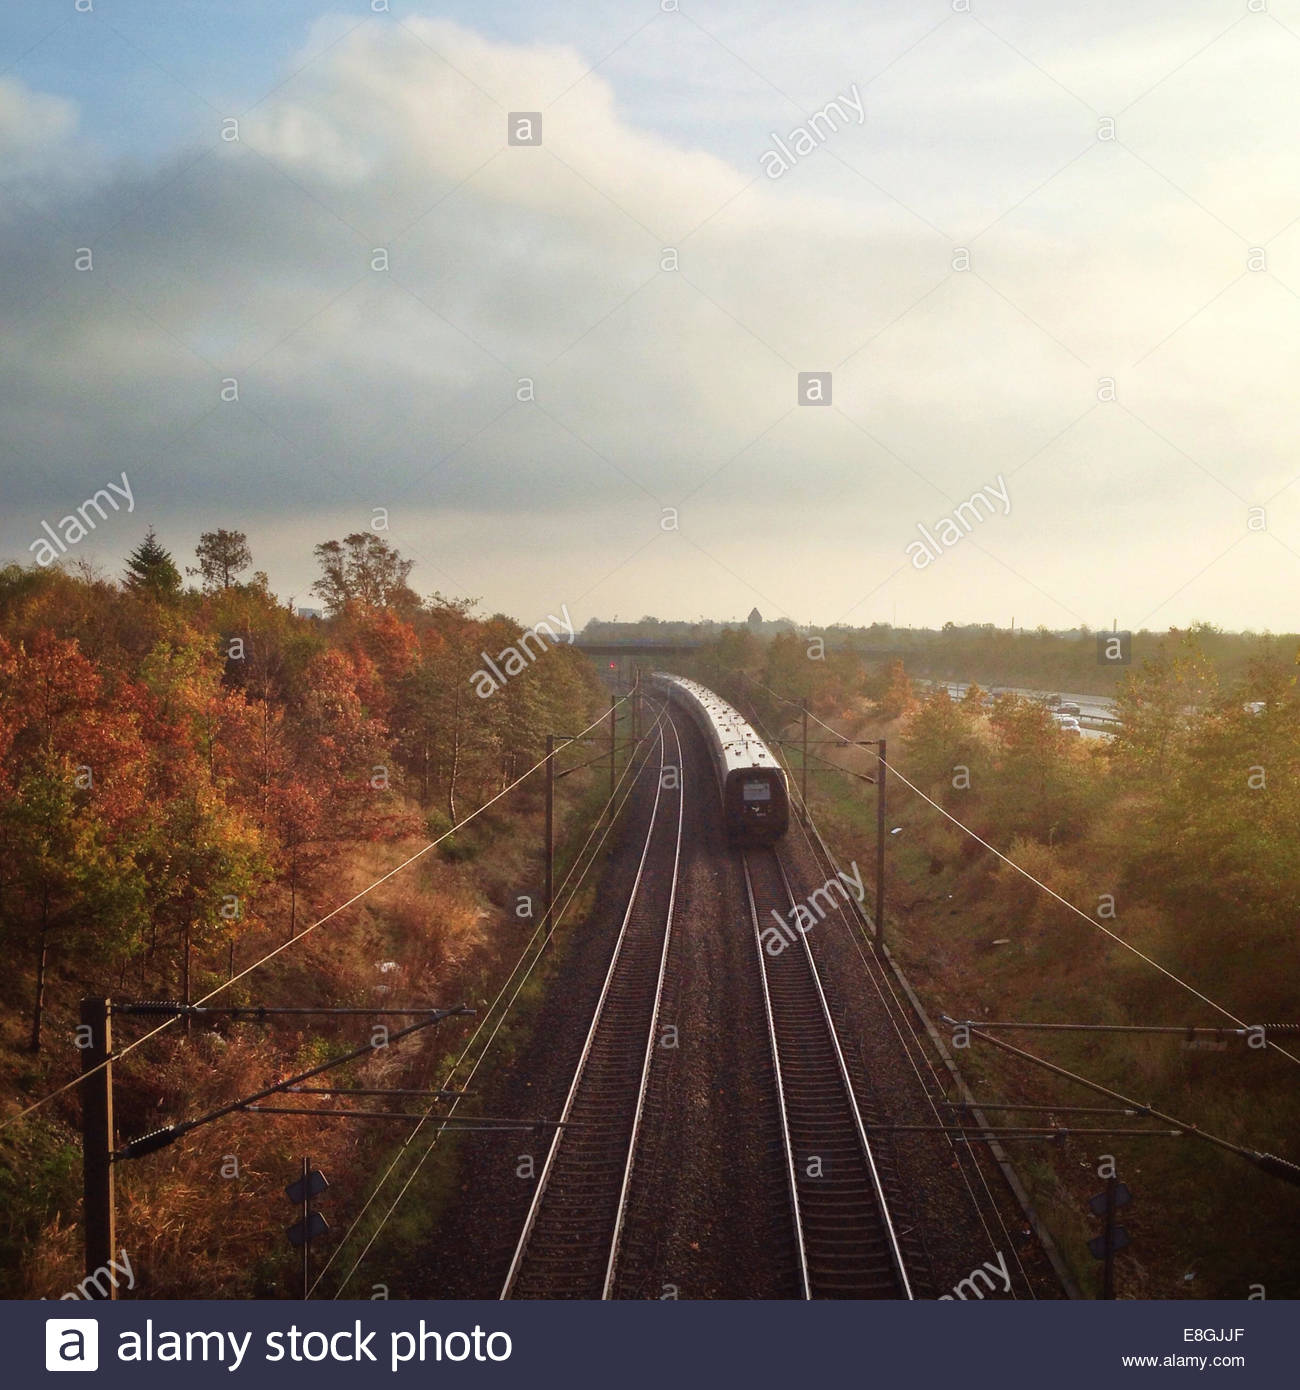 Elevated view of train travelling through autumn landscape - Stock Image